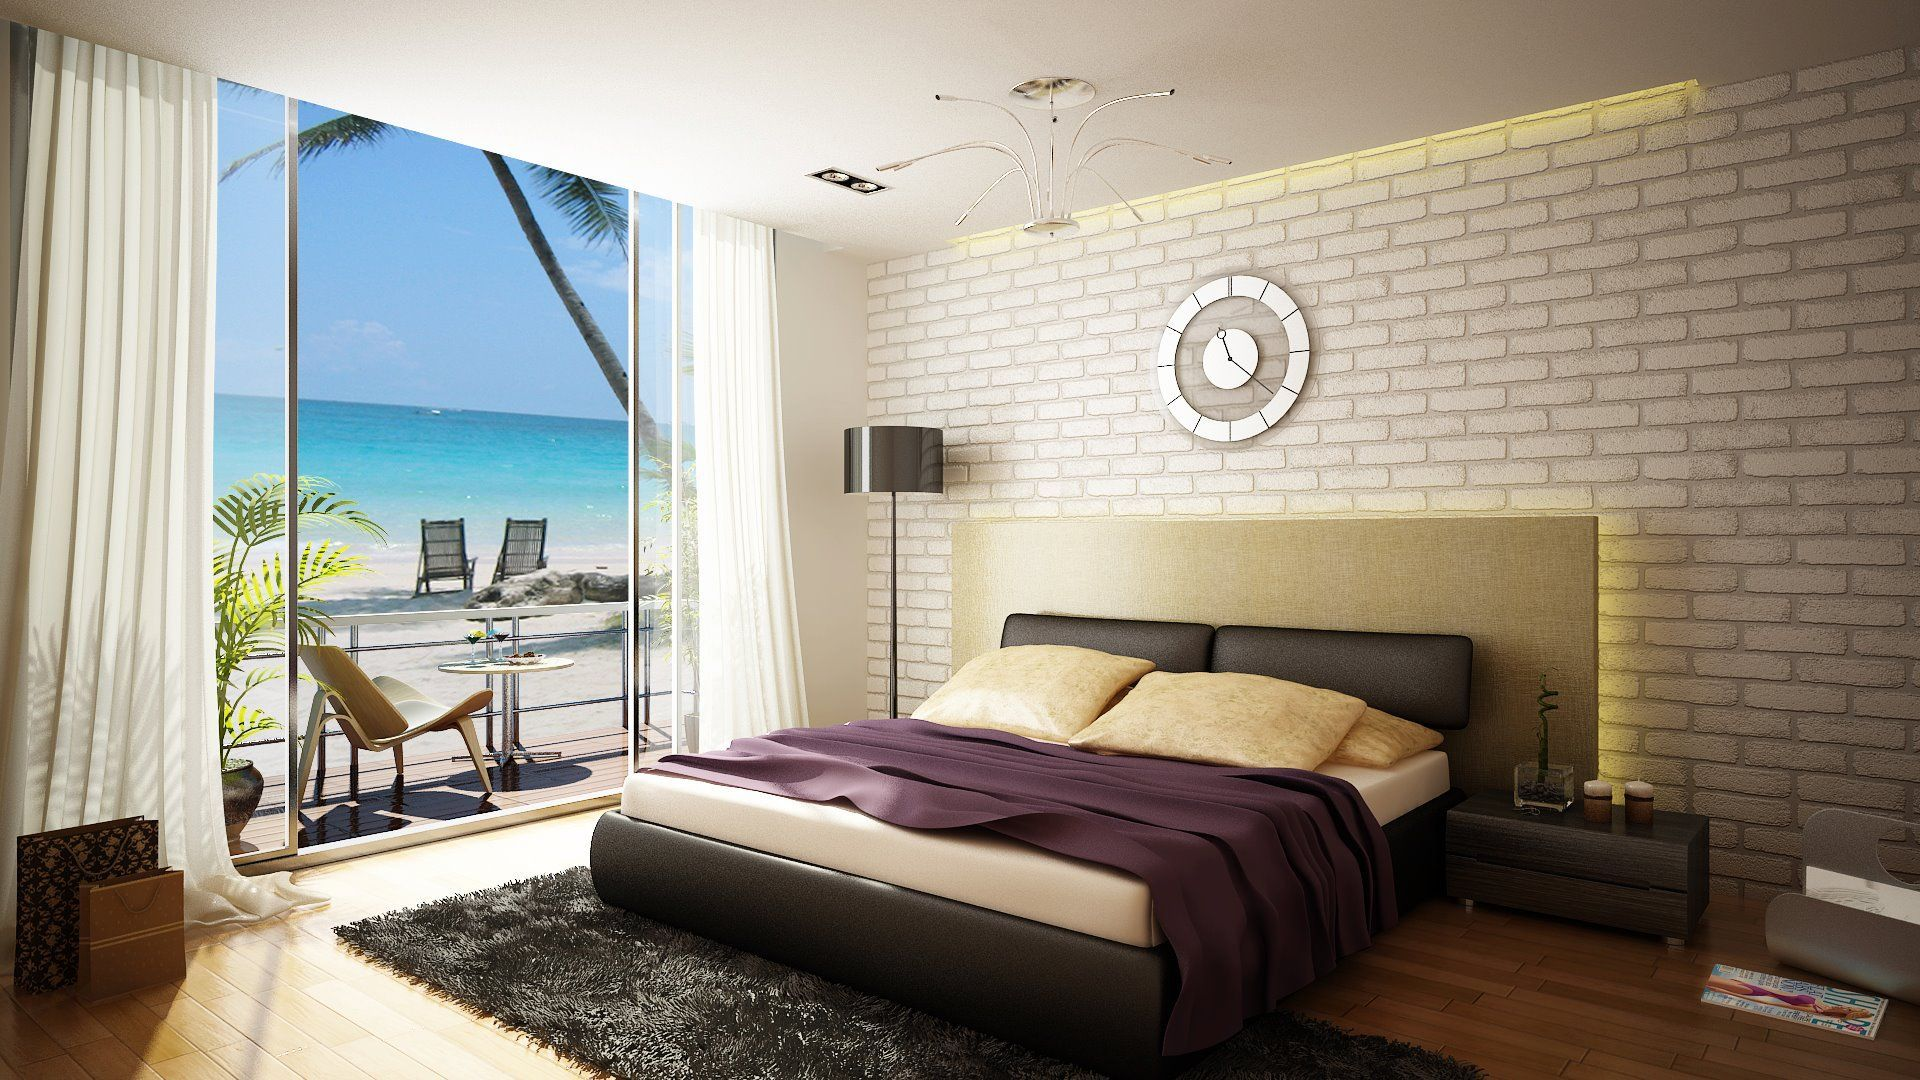 luxury beach bedroom in homes remodel ideas with beach bedroom